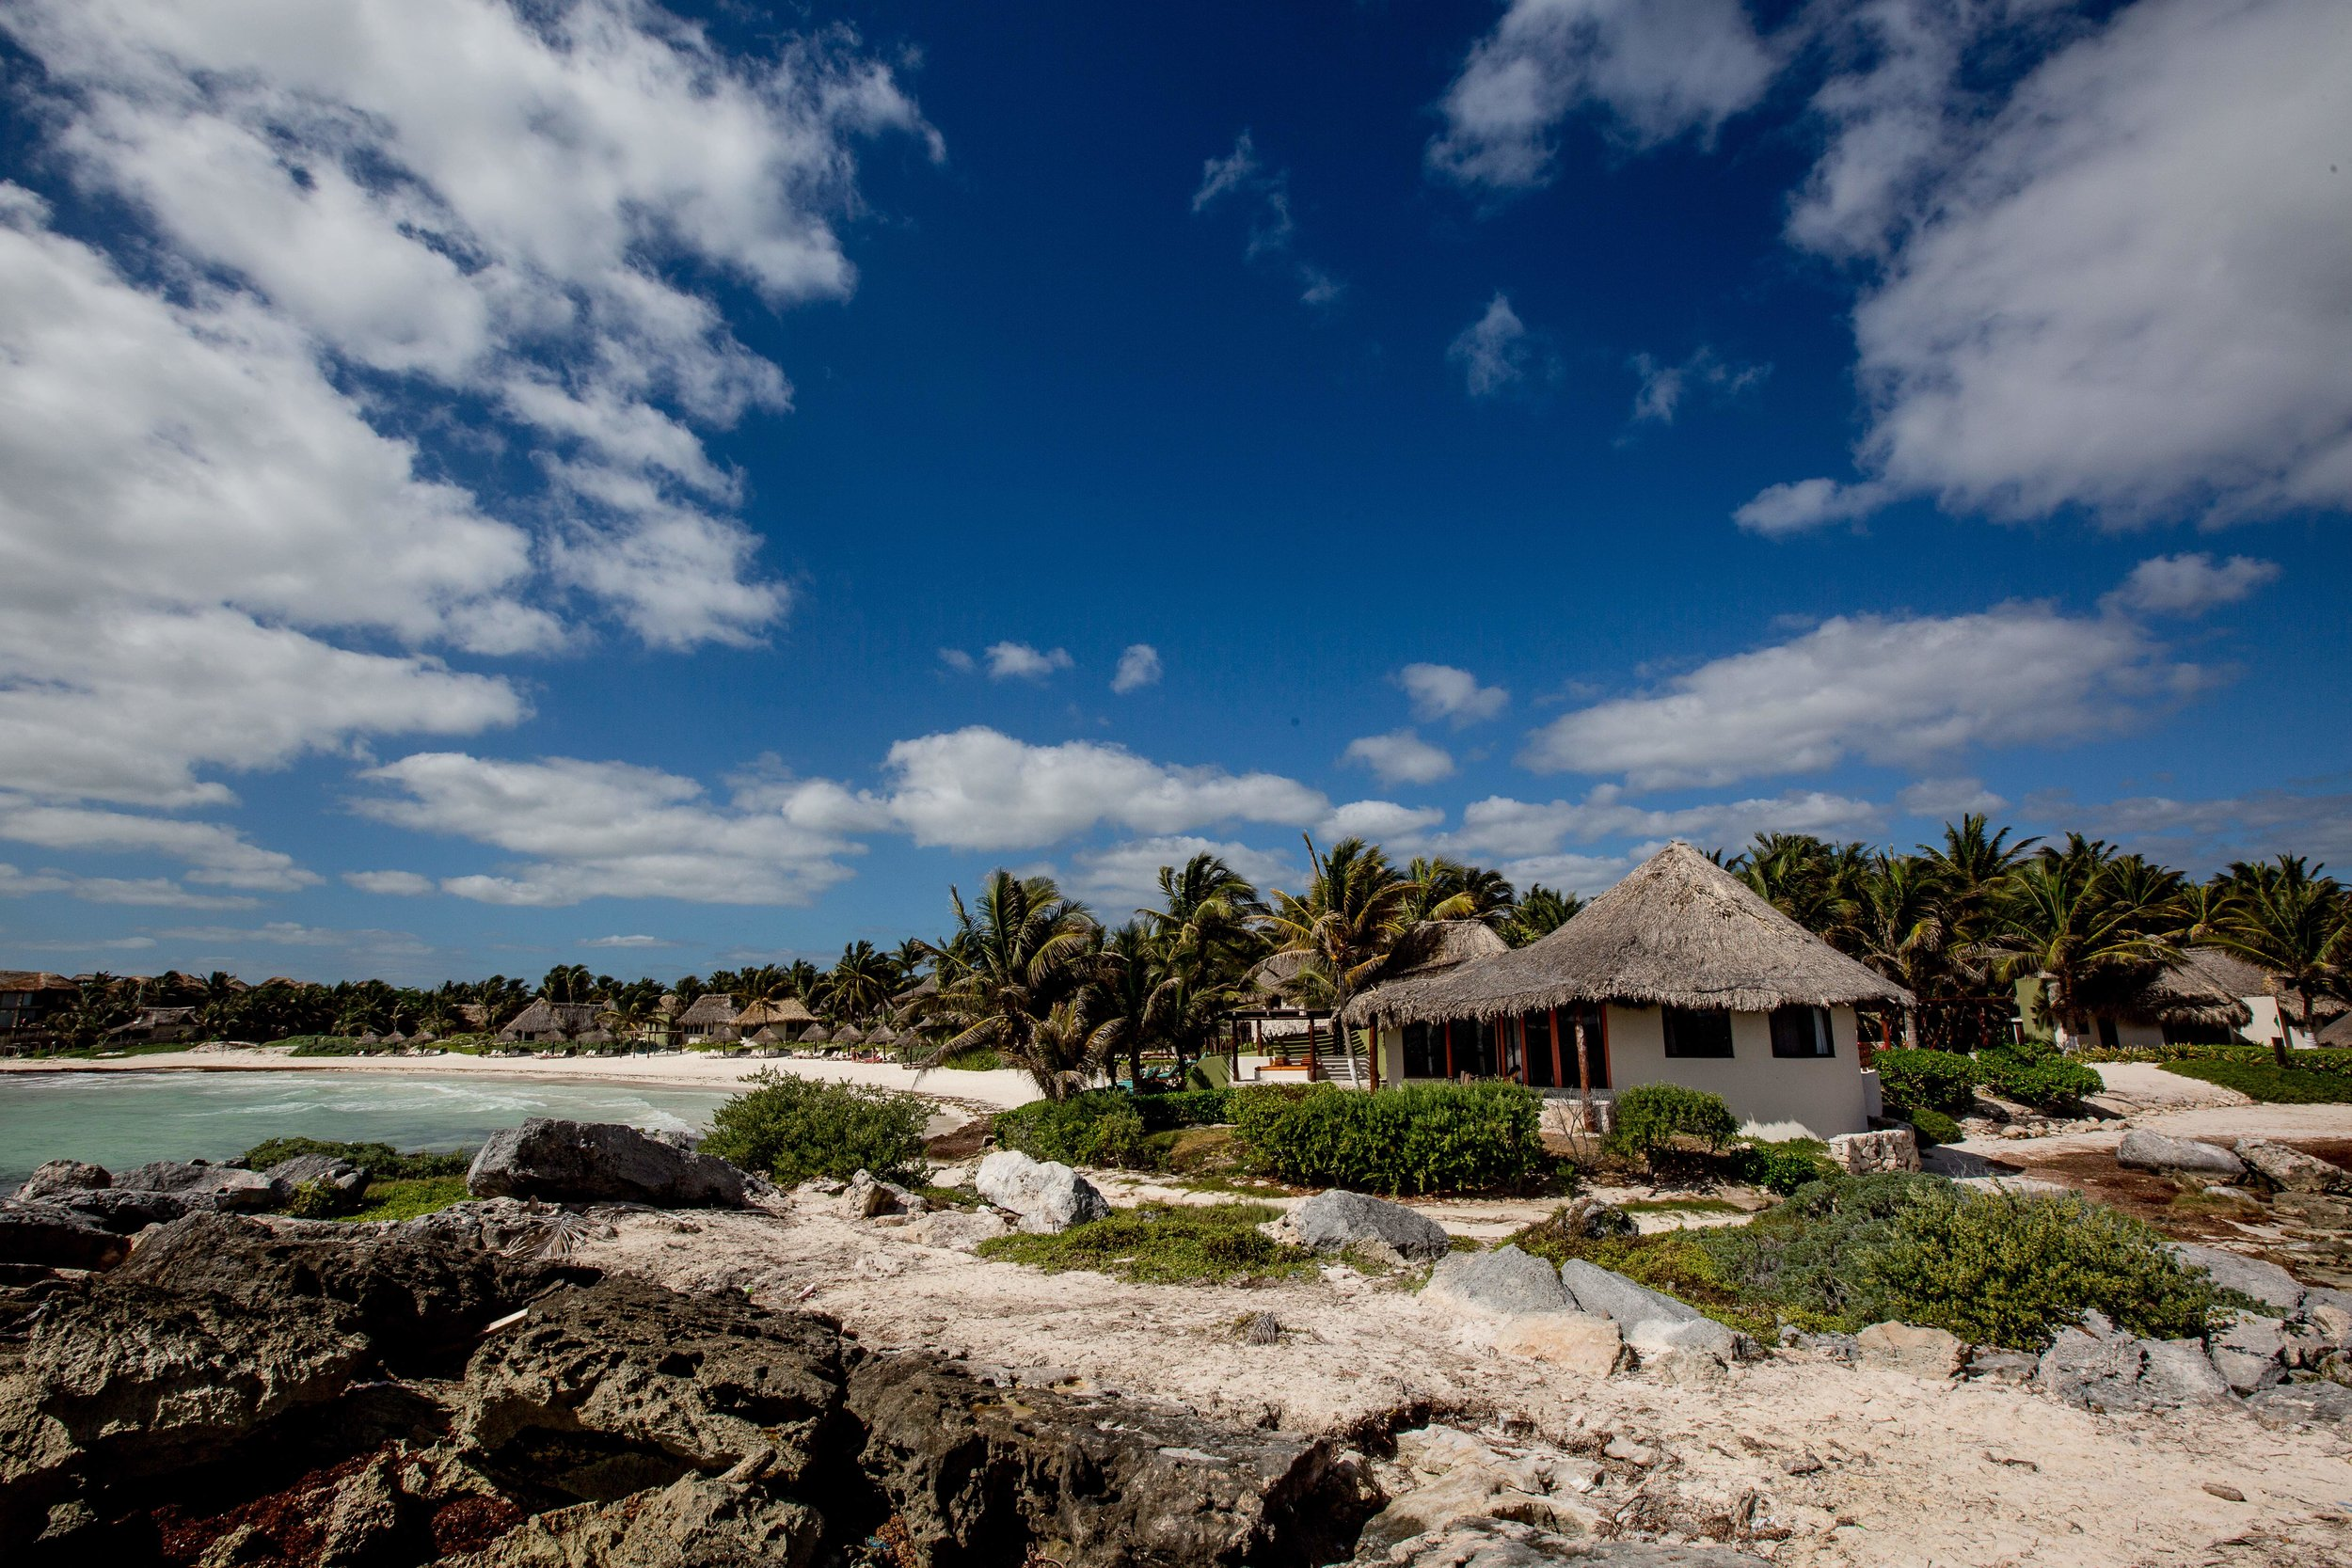 "welcome to maya tulum. - Where: Maya Tulum, Tulum, Q.R., MexicoWhen: March 9-14, 2019What: 6-day / 5-night Live Better Retreat Experience in the barefoot luxury capital of the world. Ancient Mayan tradition combined with beach workouts, community dinners, epic yoga flows, actionable workshops to upgrade your life, one-on-one coaching sessions, beach bonfires, and sunrise meditation to flow and move better...sign me the F up. This isn't just ""yoga and chill"" - it's everything to help you Live Better."